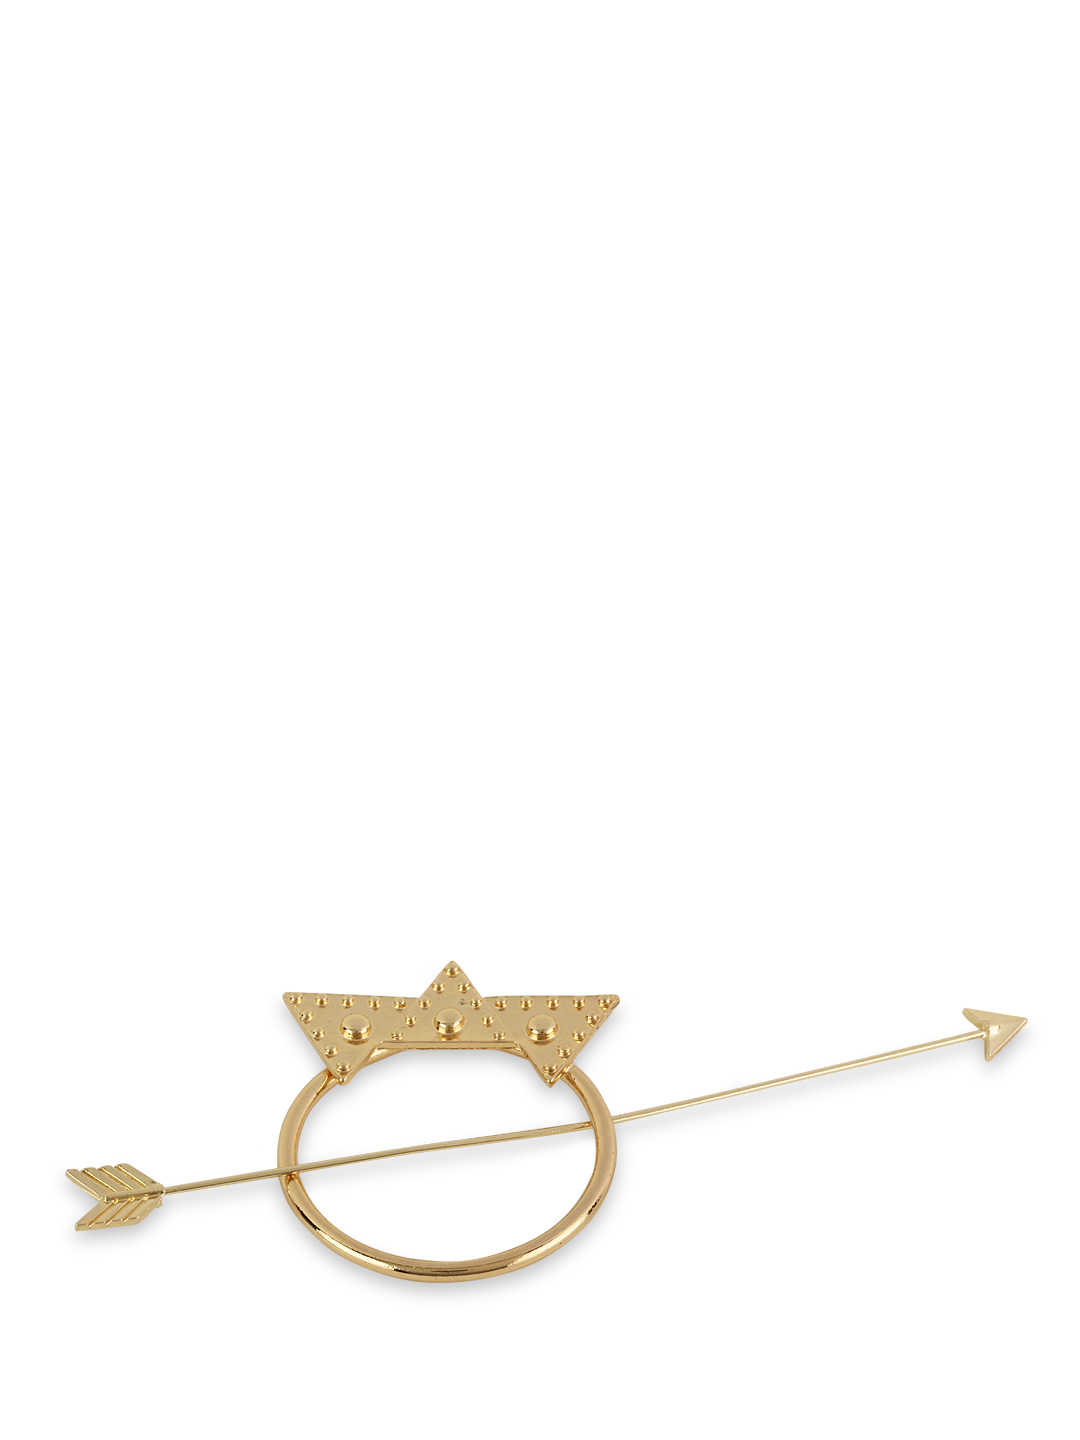 Fayon Gold Arrow Motif Hair Accessory 1